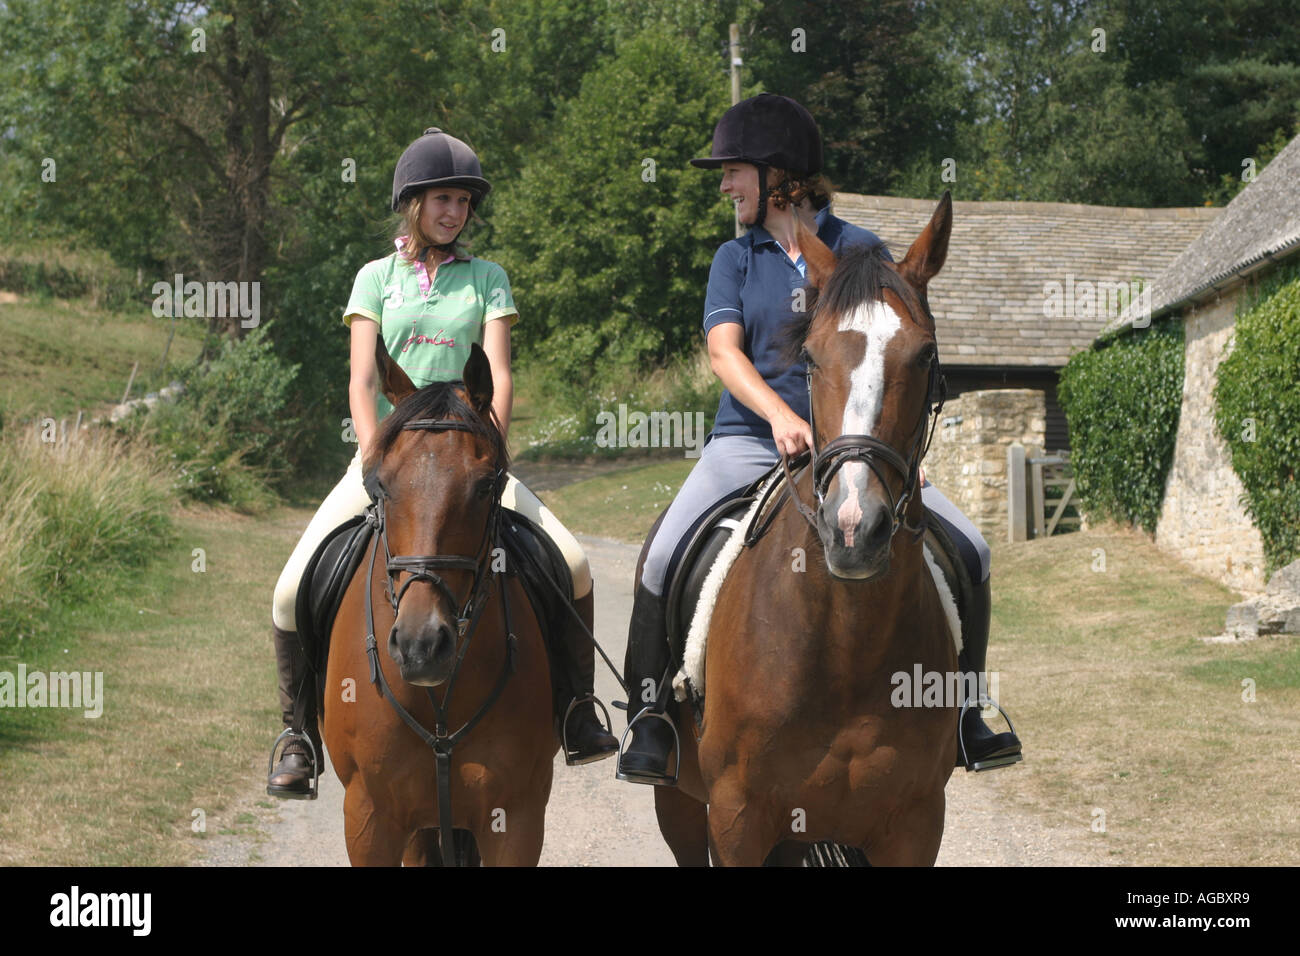 A mother and daughter horse riding in the English countryside. - Stock Image